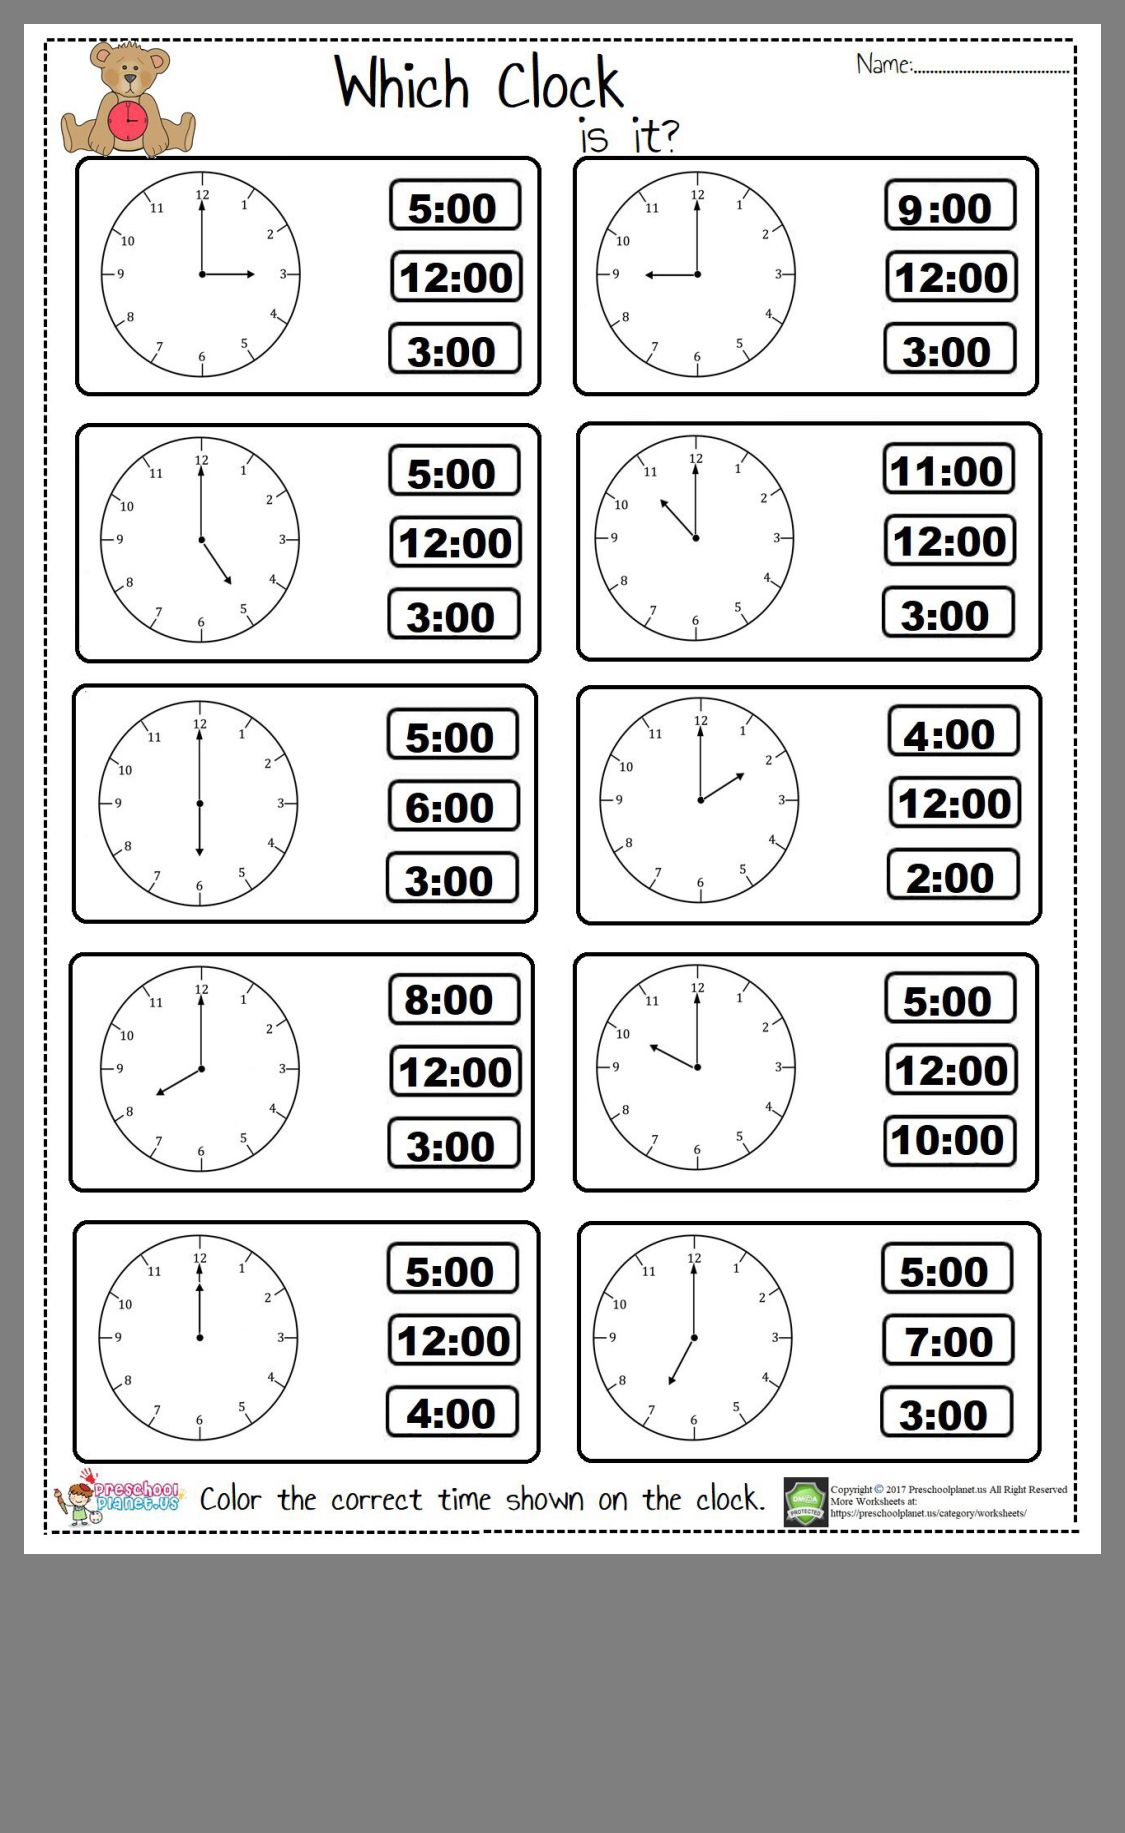 Pin By Cathy Valcourt On Future Workbook In 2020 Time Worksheets English Worksheets For Kids Telling Time Worksheets [ 1833 x 1125 Pixel ]